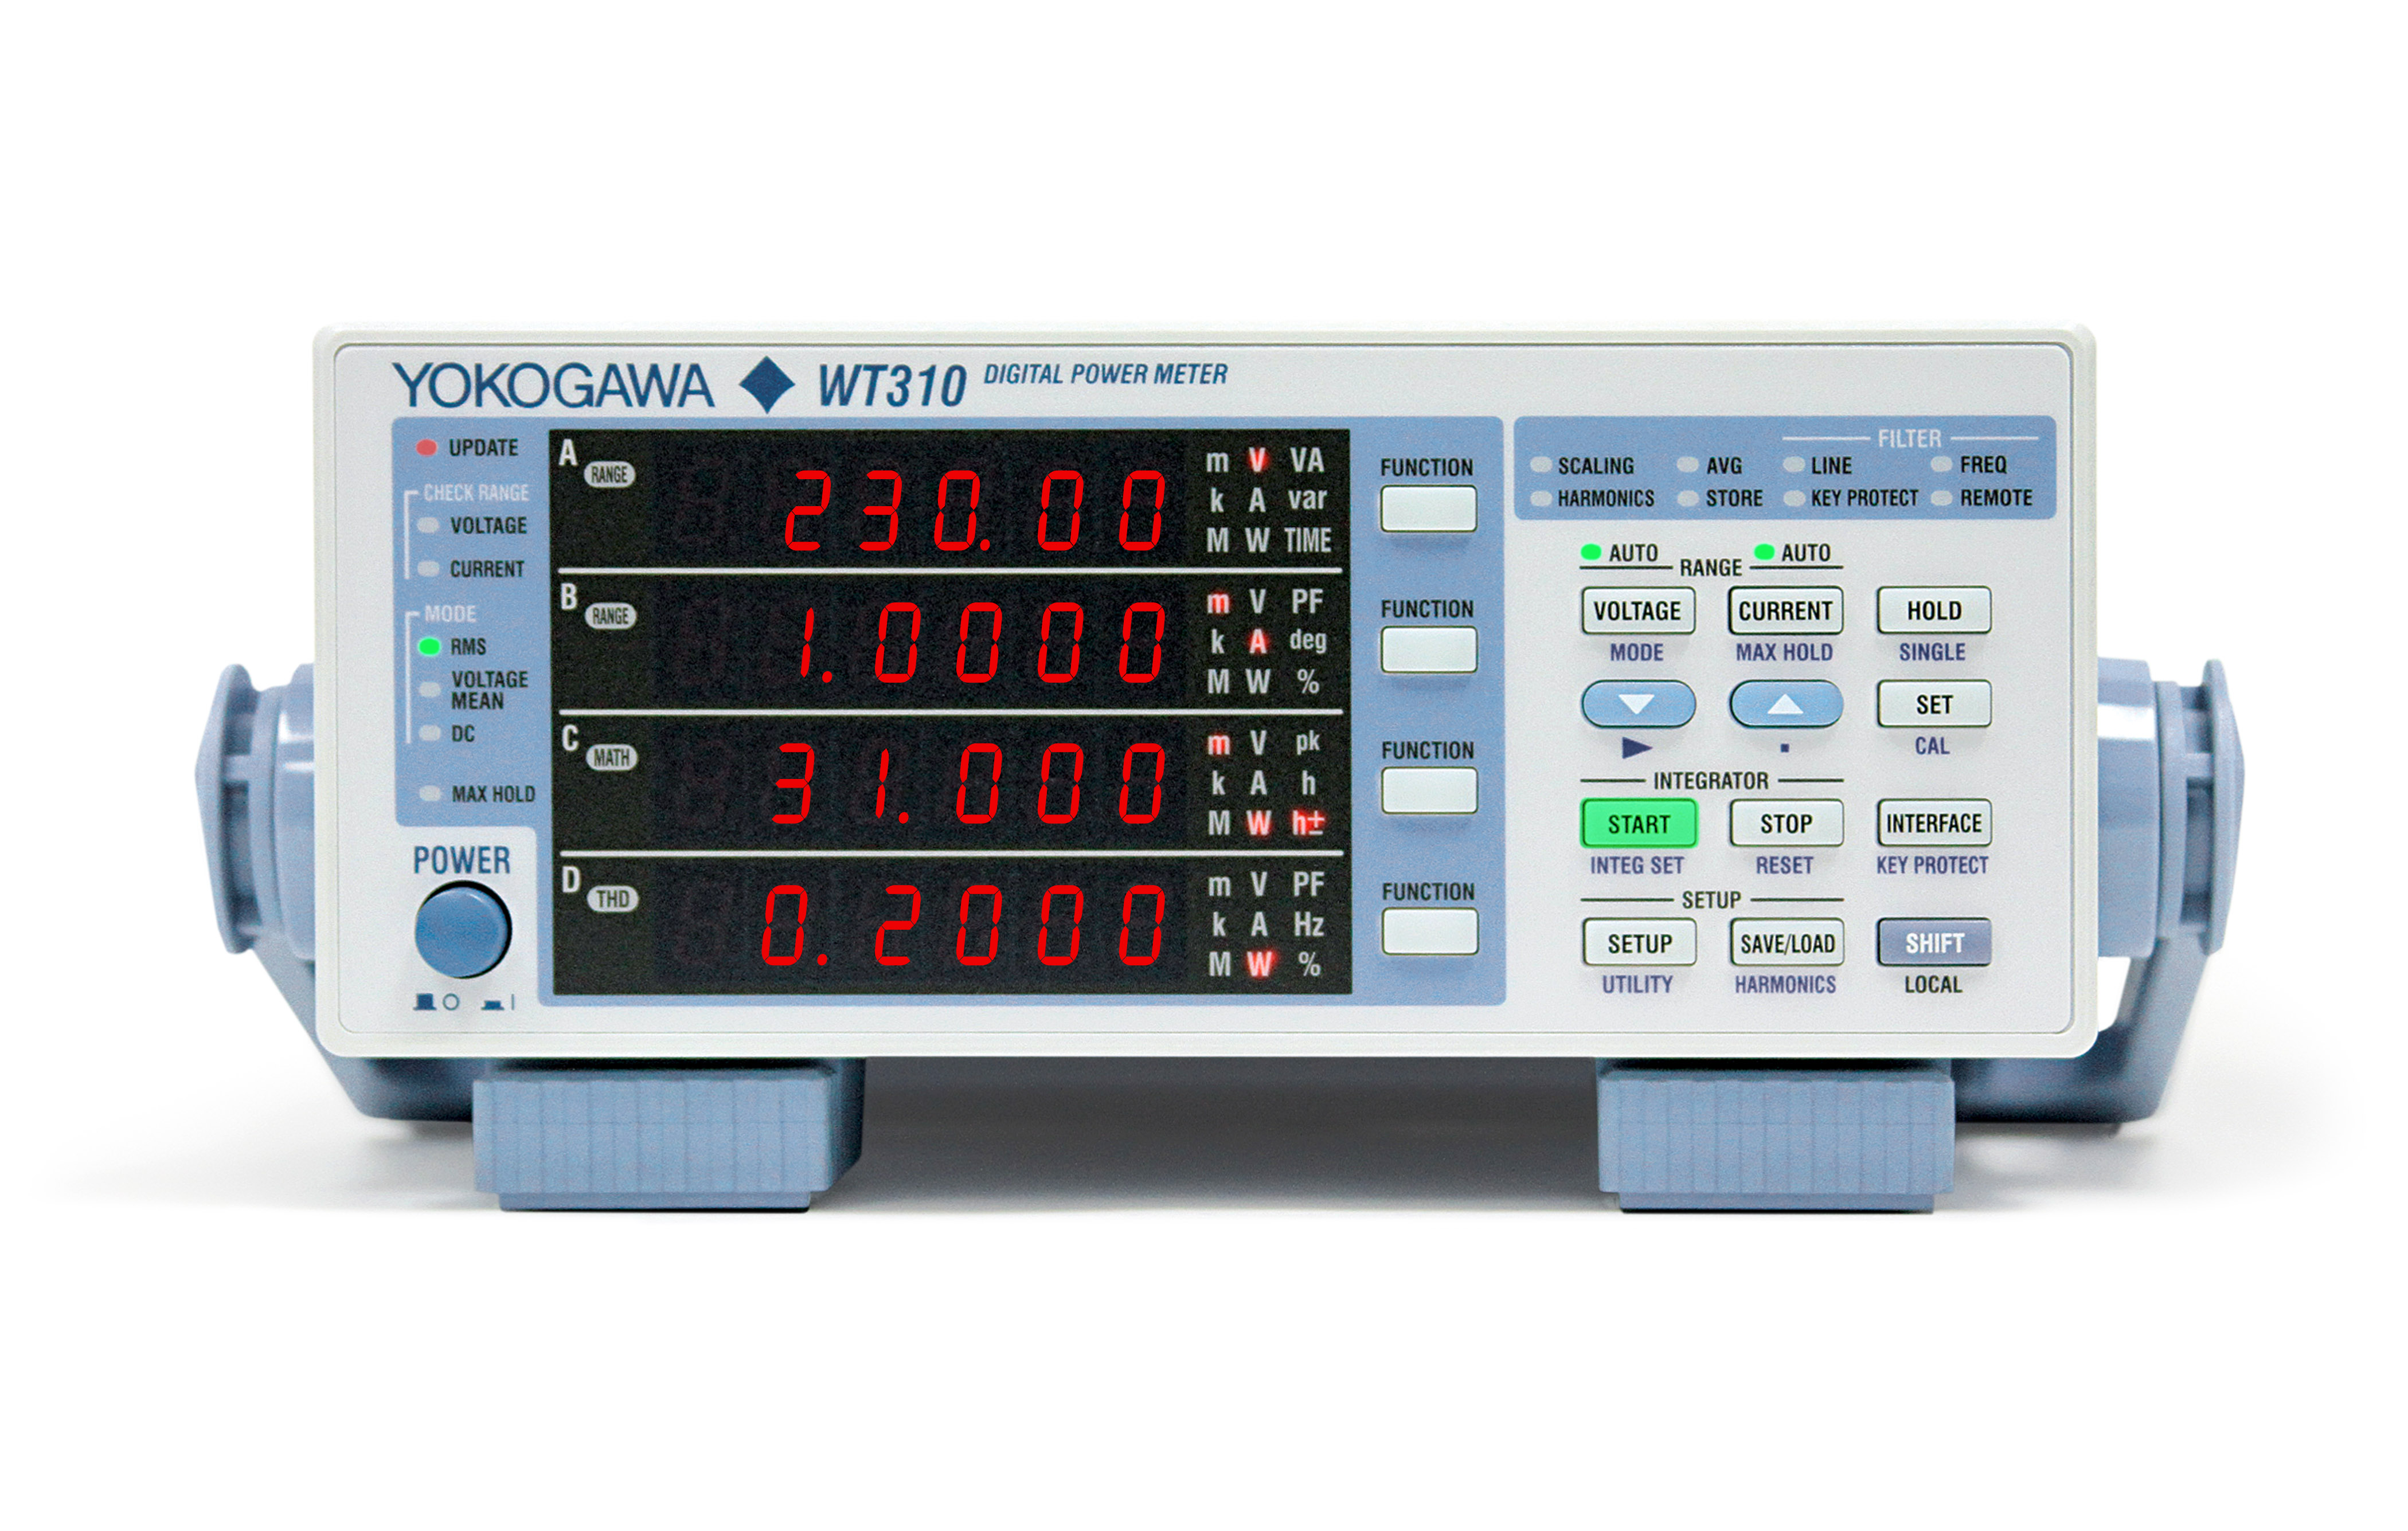 WT300E Digital Power Meter